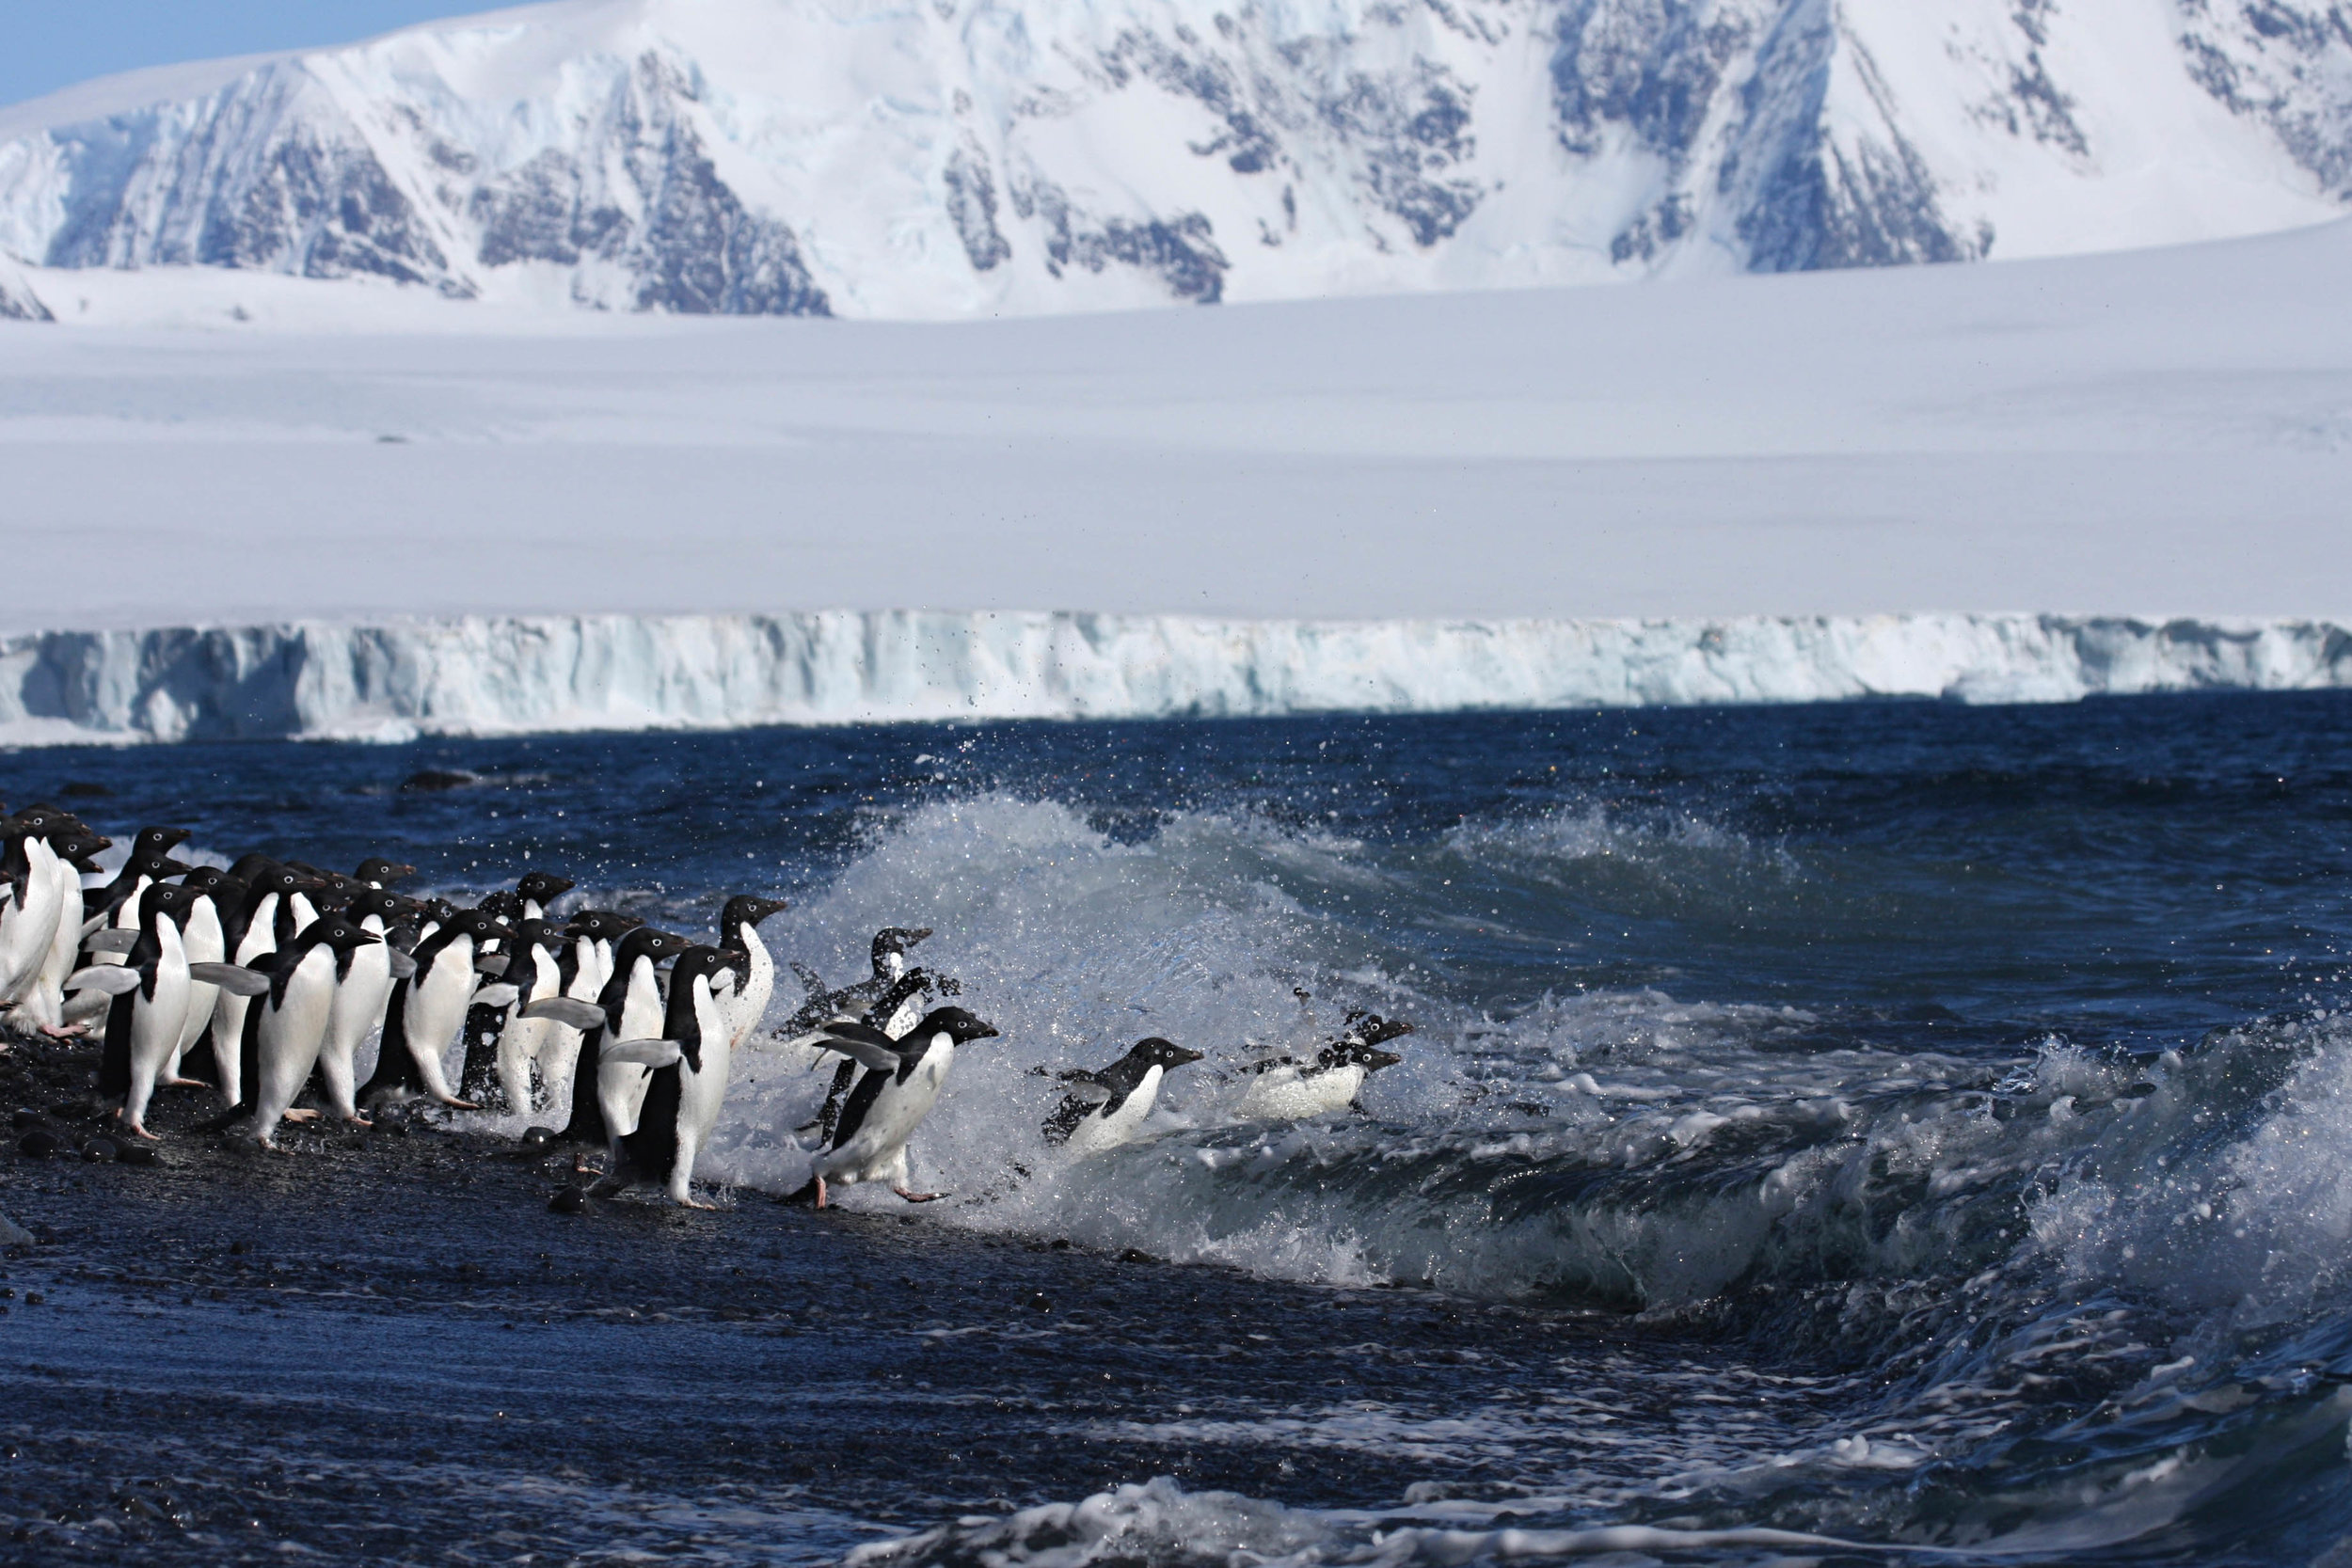 Adelie penguins off to feed in the Weddell Sea